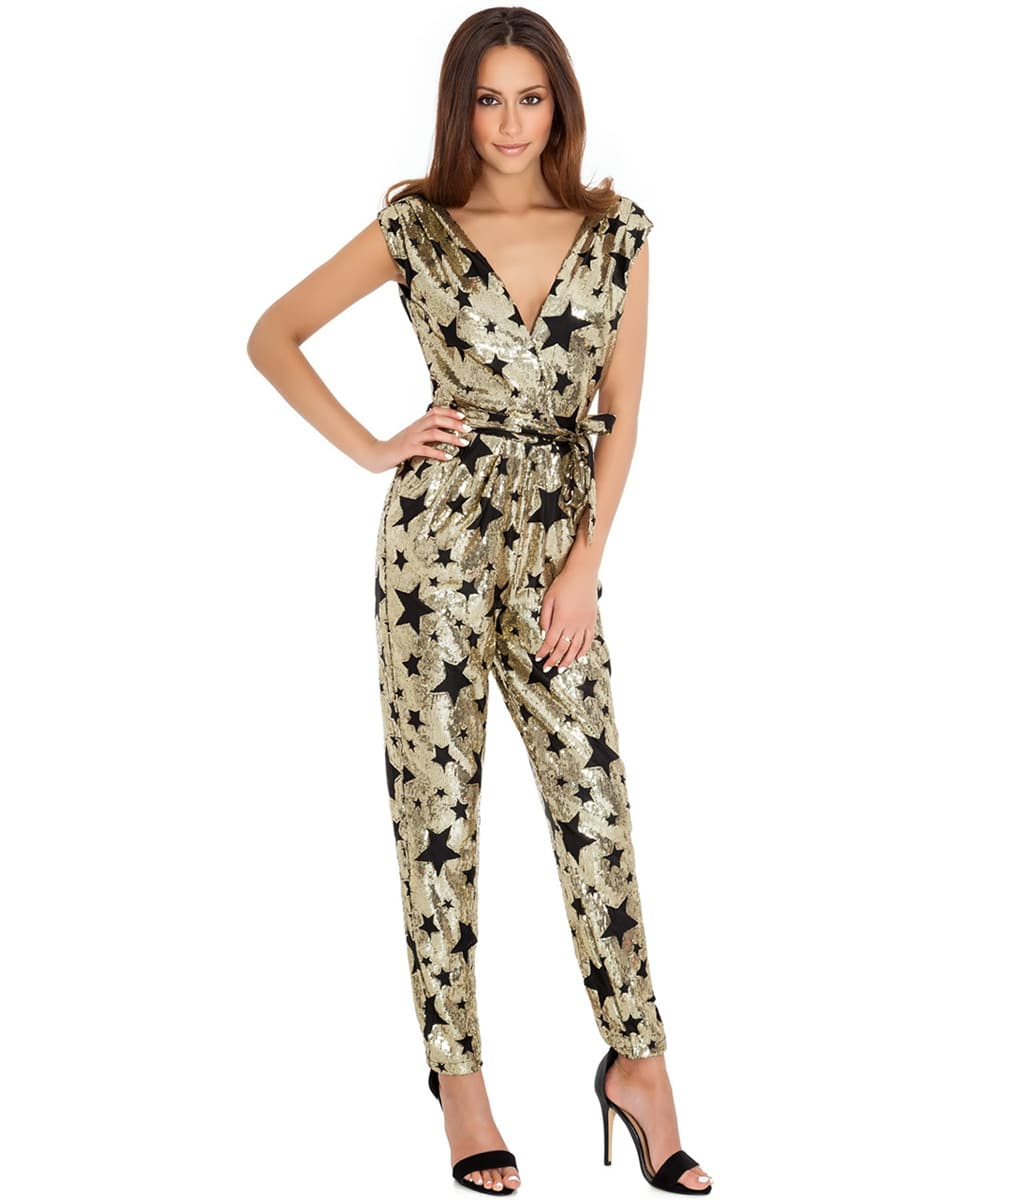 City Goddess - Star Sequins Jumpsuit